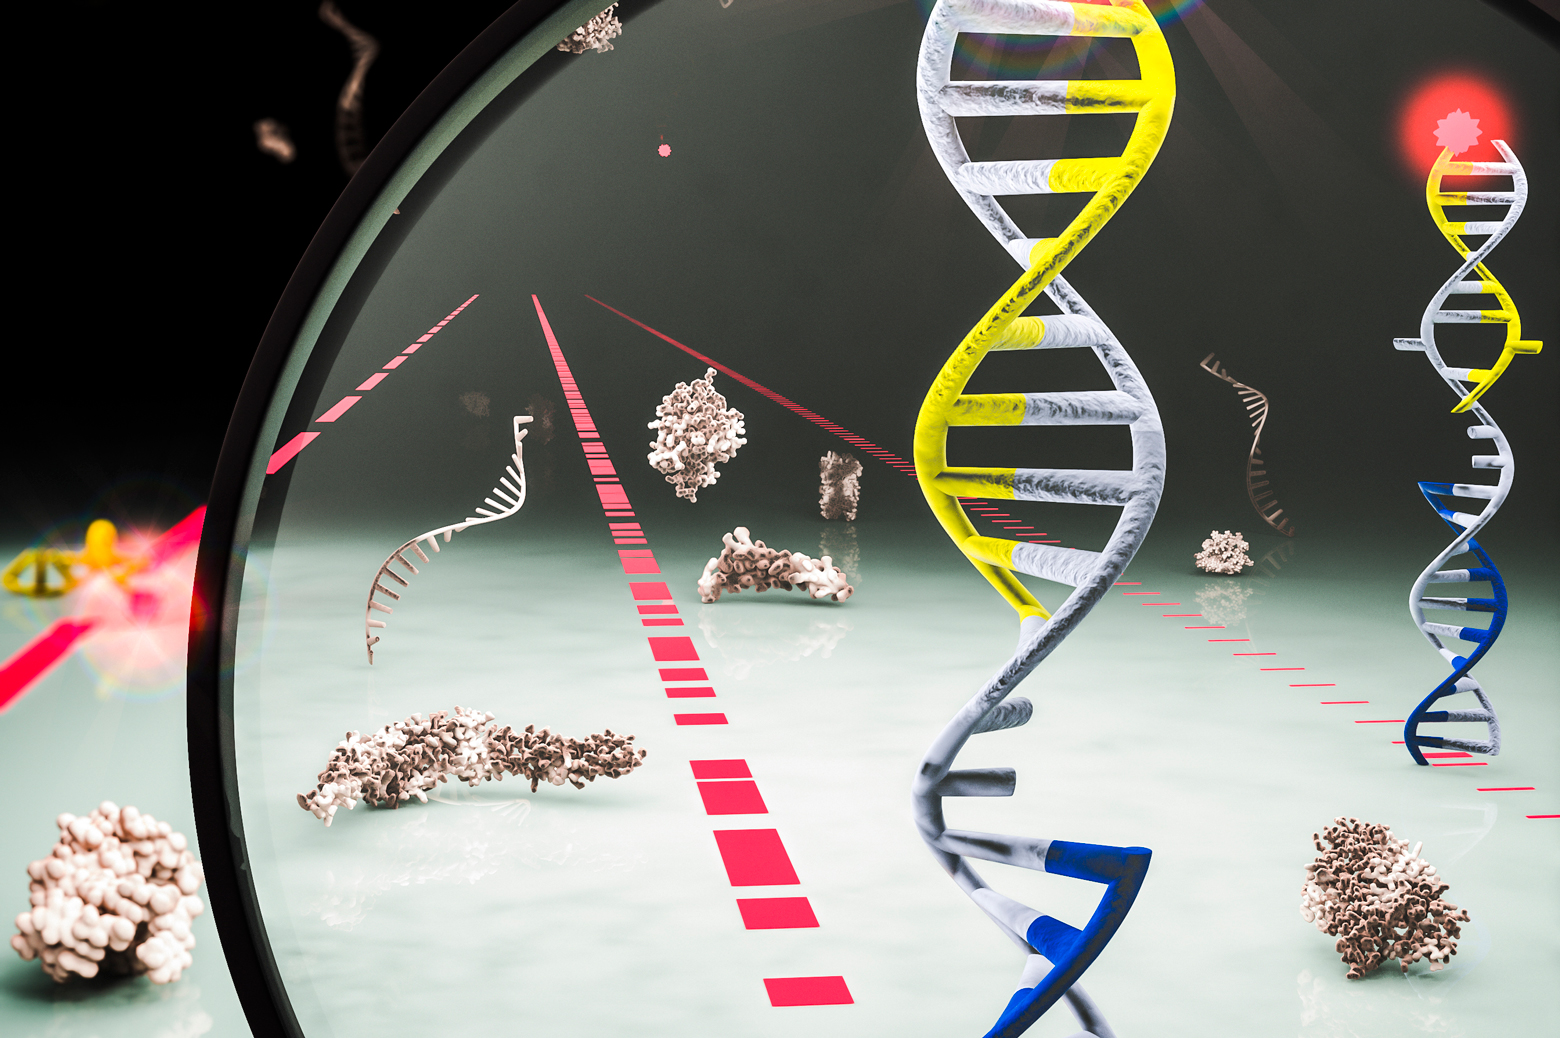 In this illustration, the red, blue and black strands represent different microRNAs that, in the new technique, attach and detach to DNA, which is gray in the image.